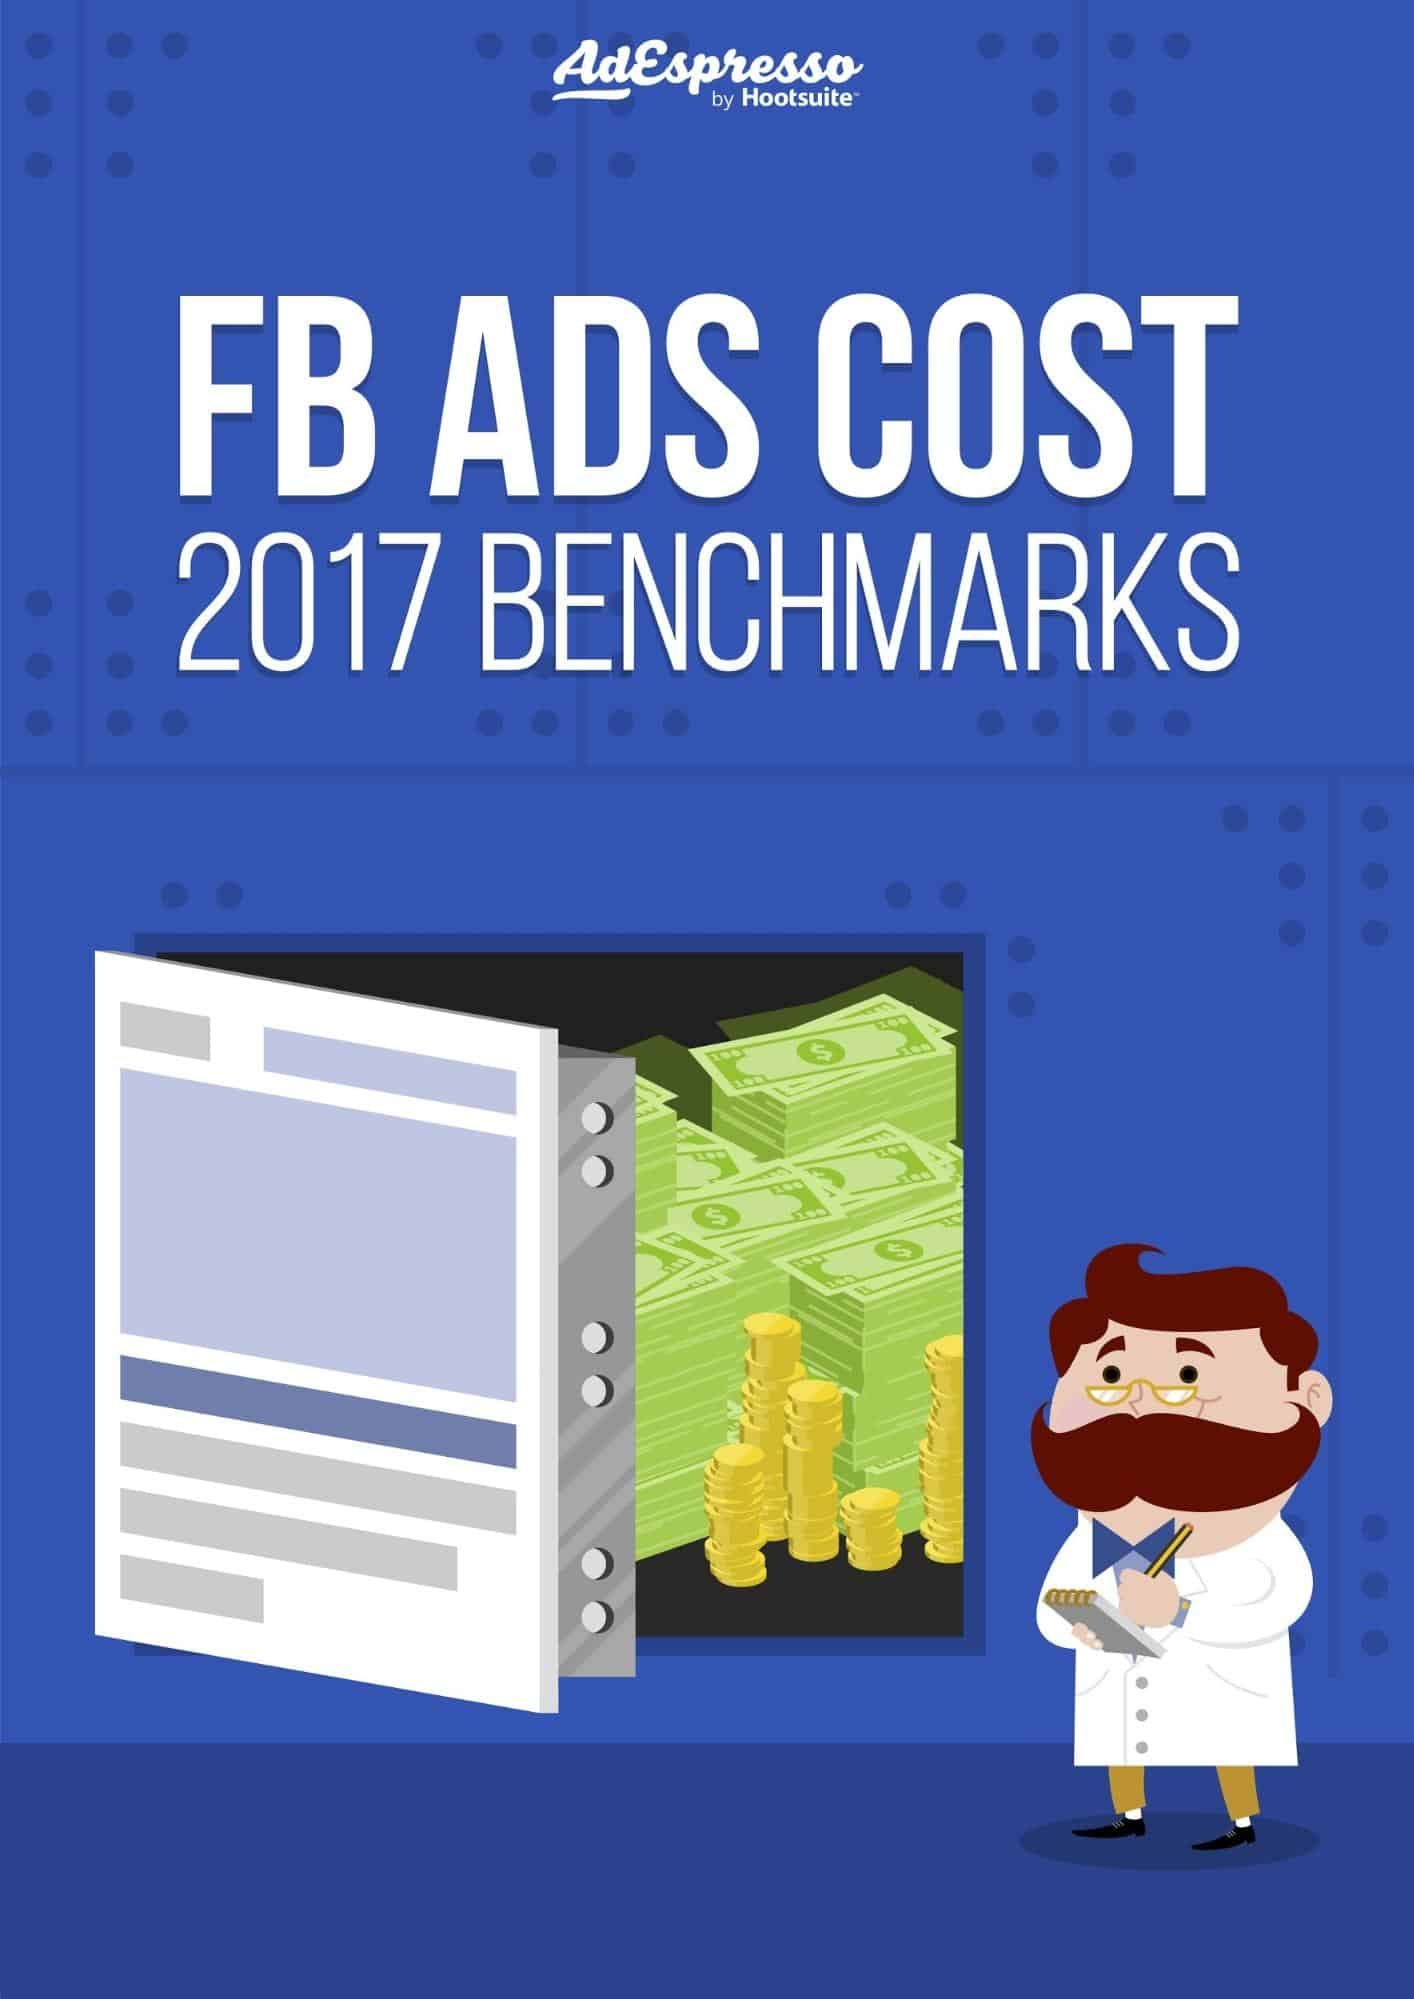 fb ads cost free ebook, free ebook example